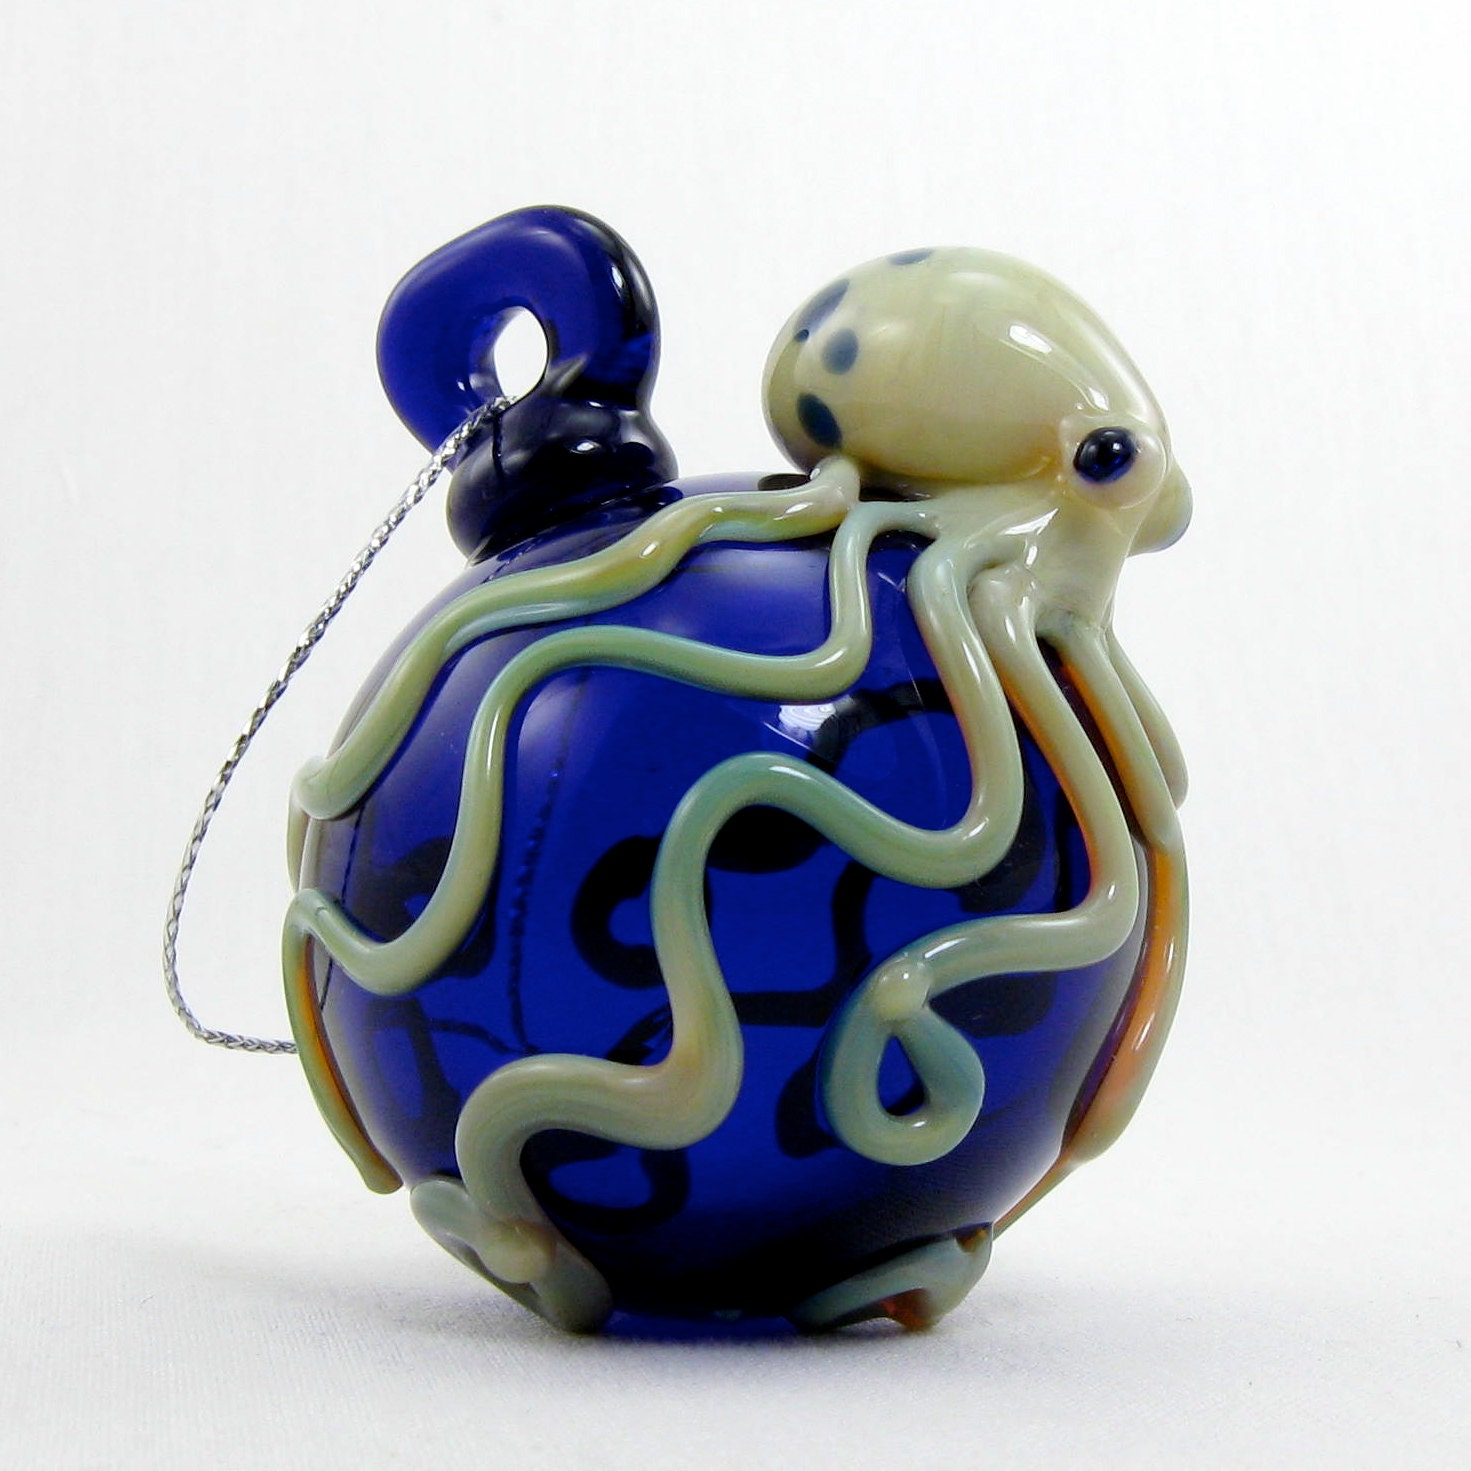 Octopus ornament hand blown glass